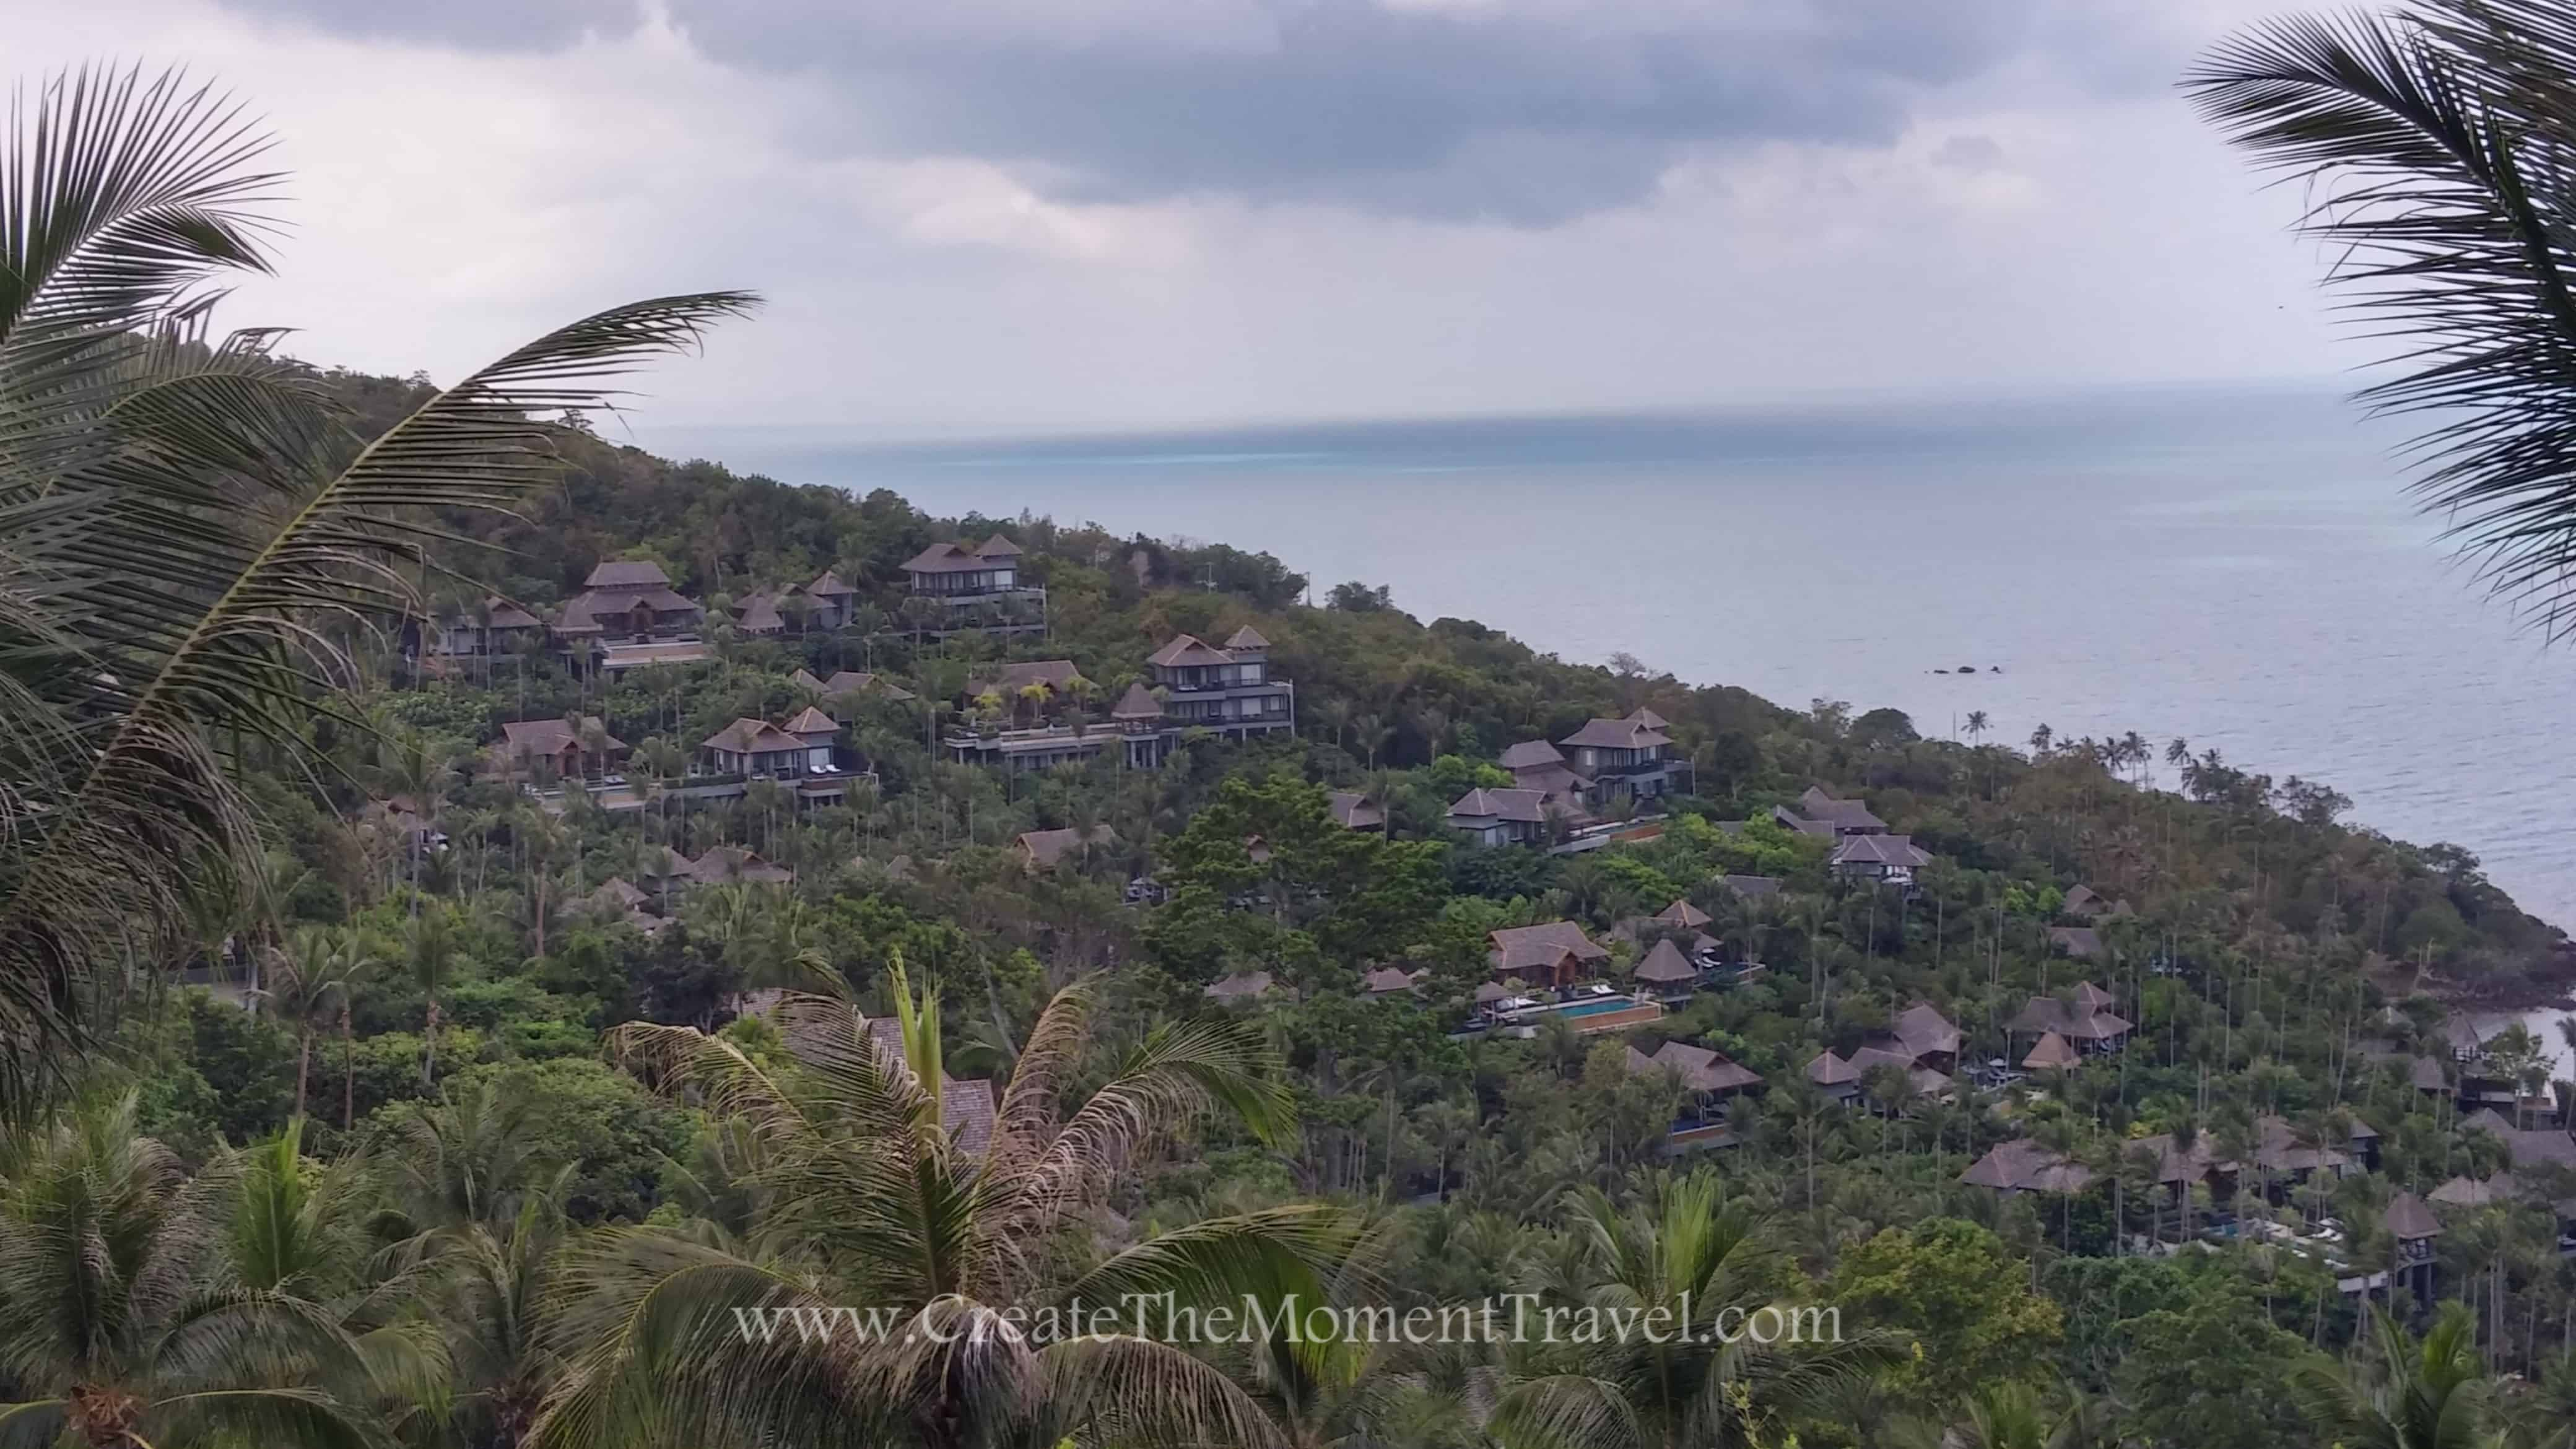 Villas on Koh Samui Thailand by Create The Moment Travel